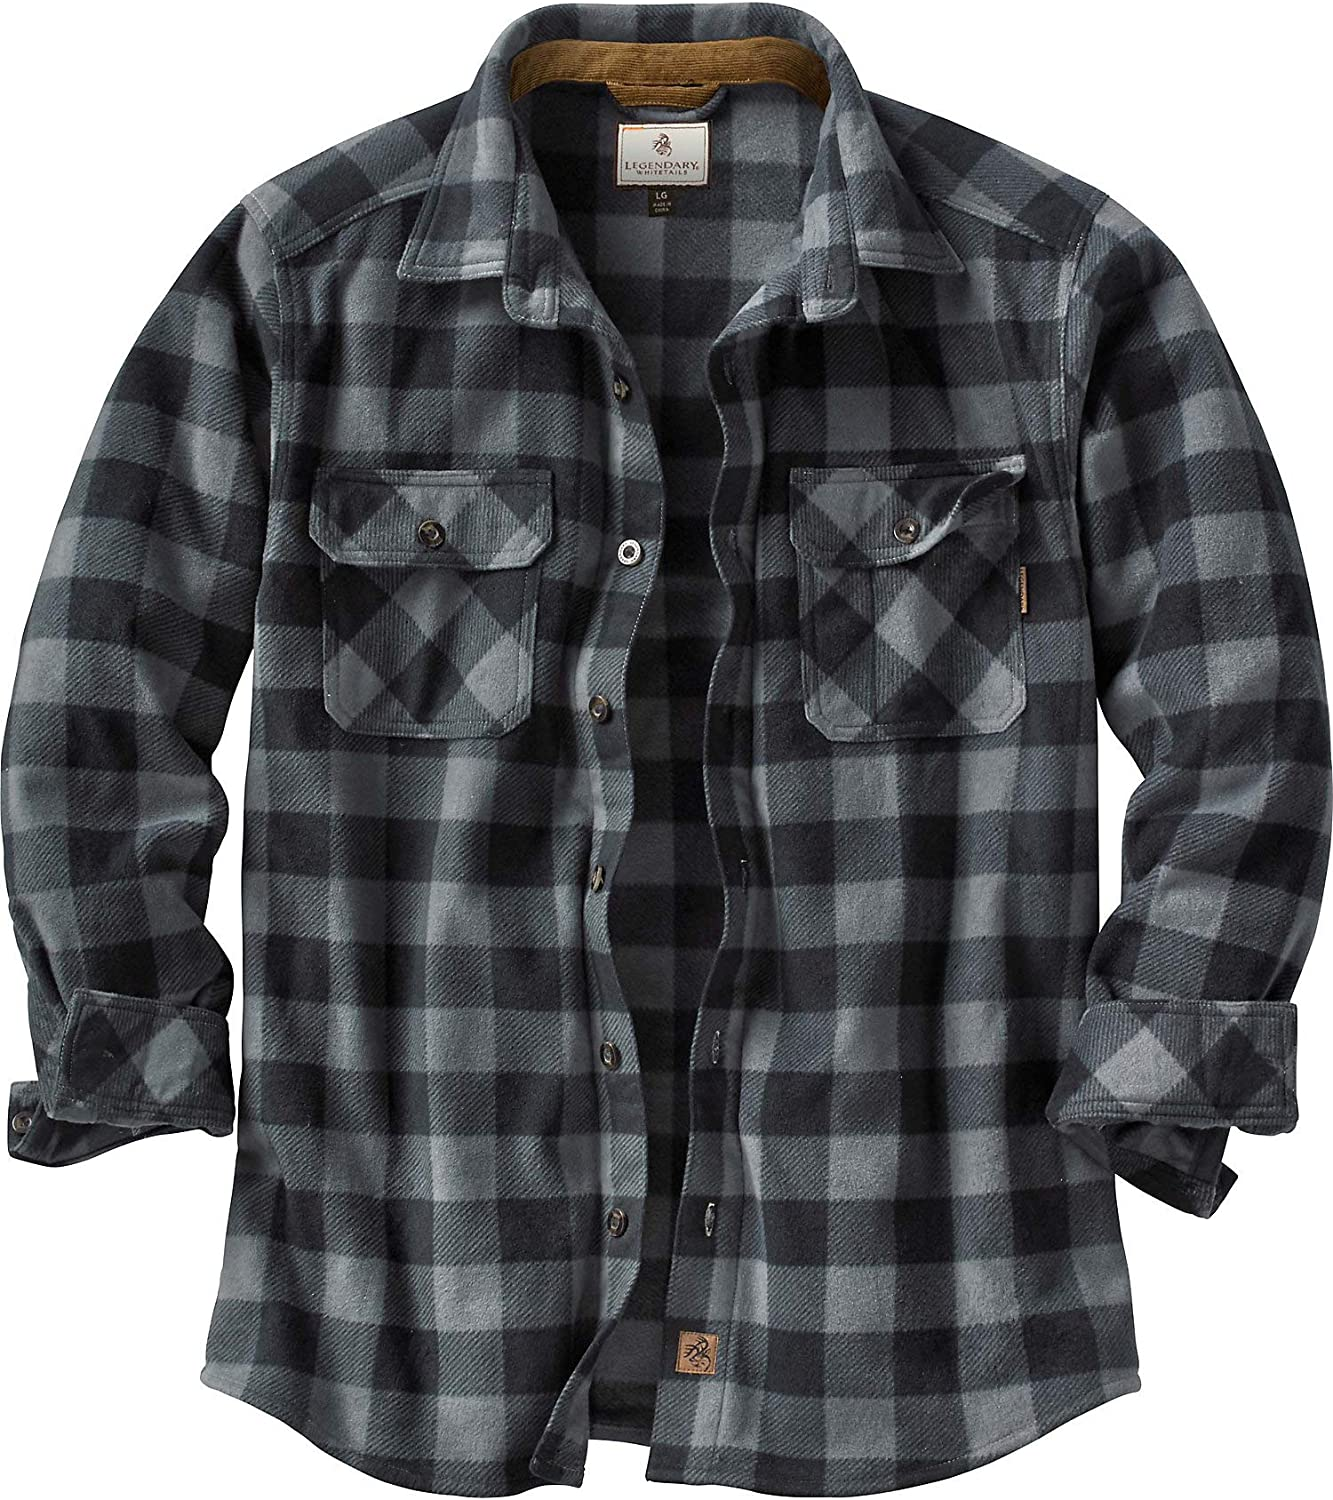 Legendary Whitetails Men's Navigator Fleece Button Up Shirt: Clothing